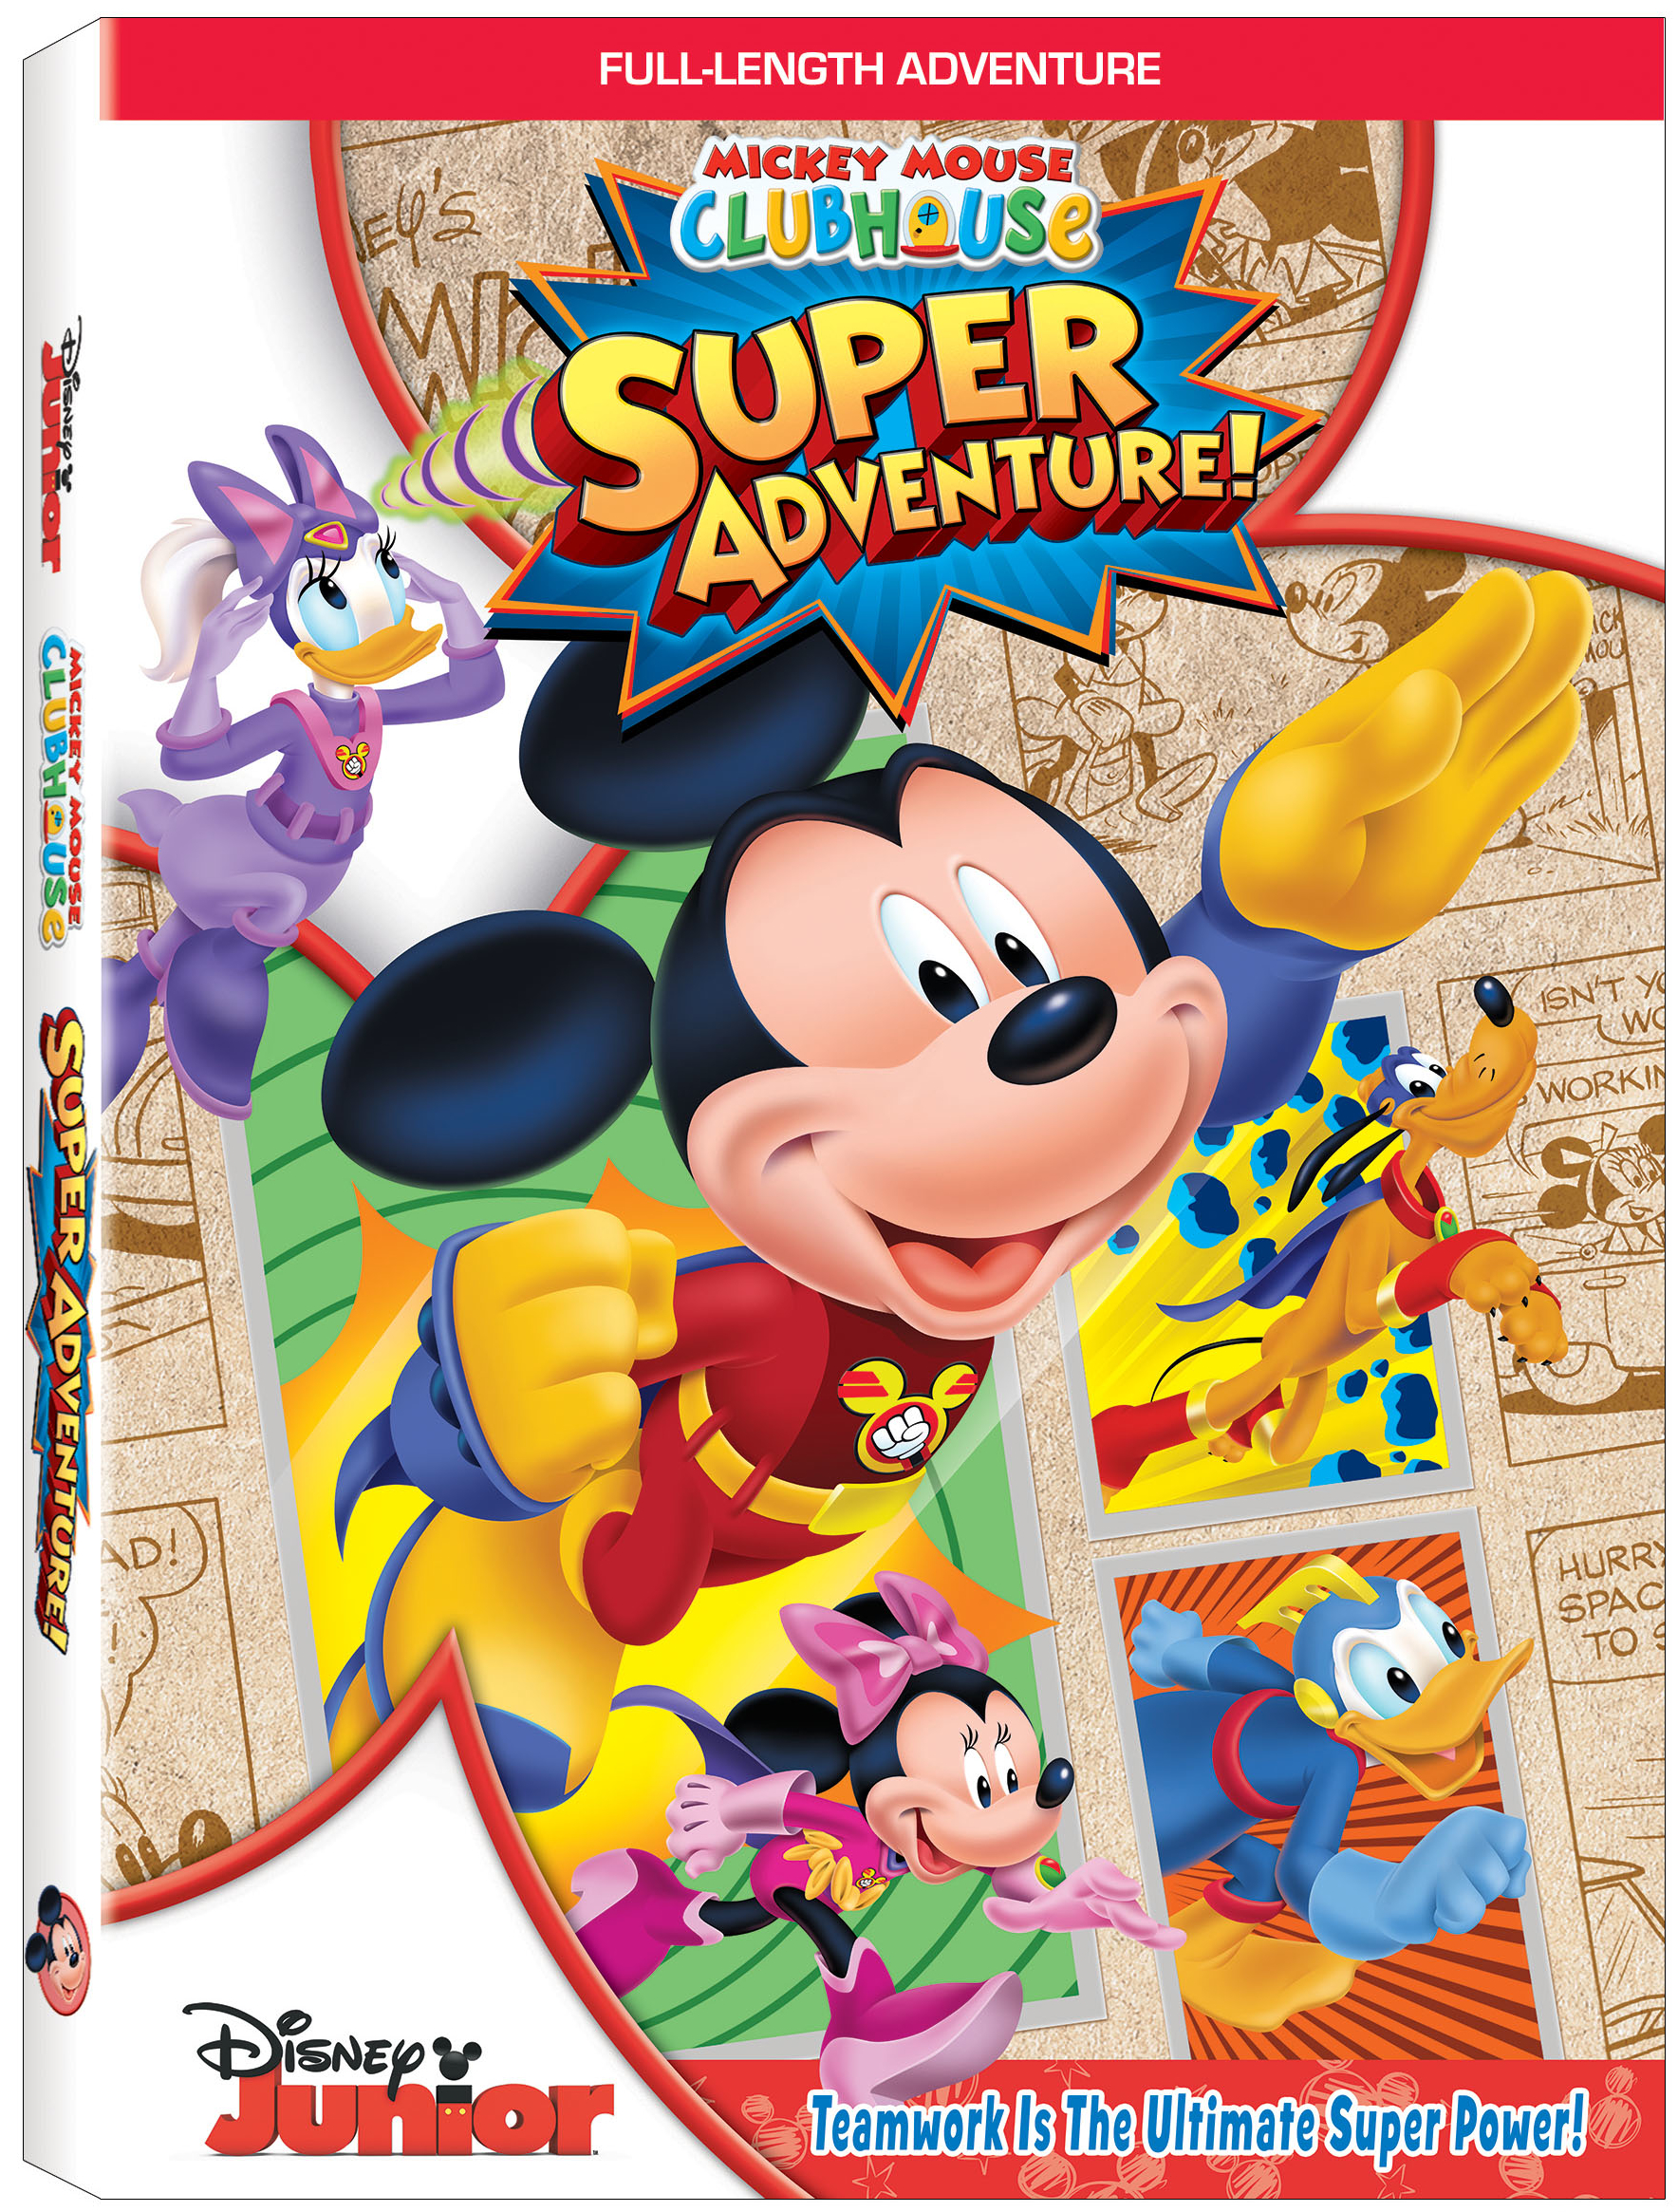 mmch super adventure dvd art my girls absolutely love mickey mouse clubhouse - Mickey Mouse Clubhouse Christmas